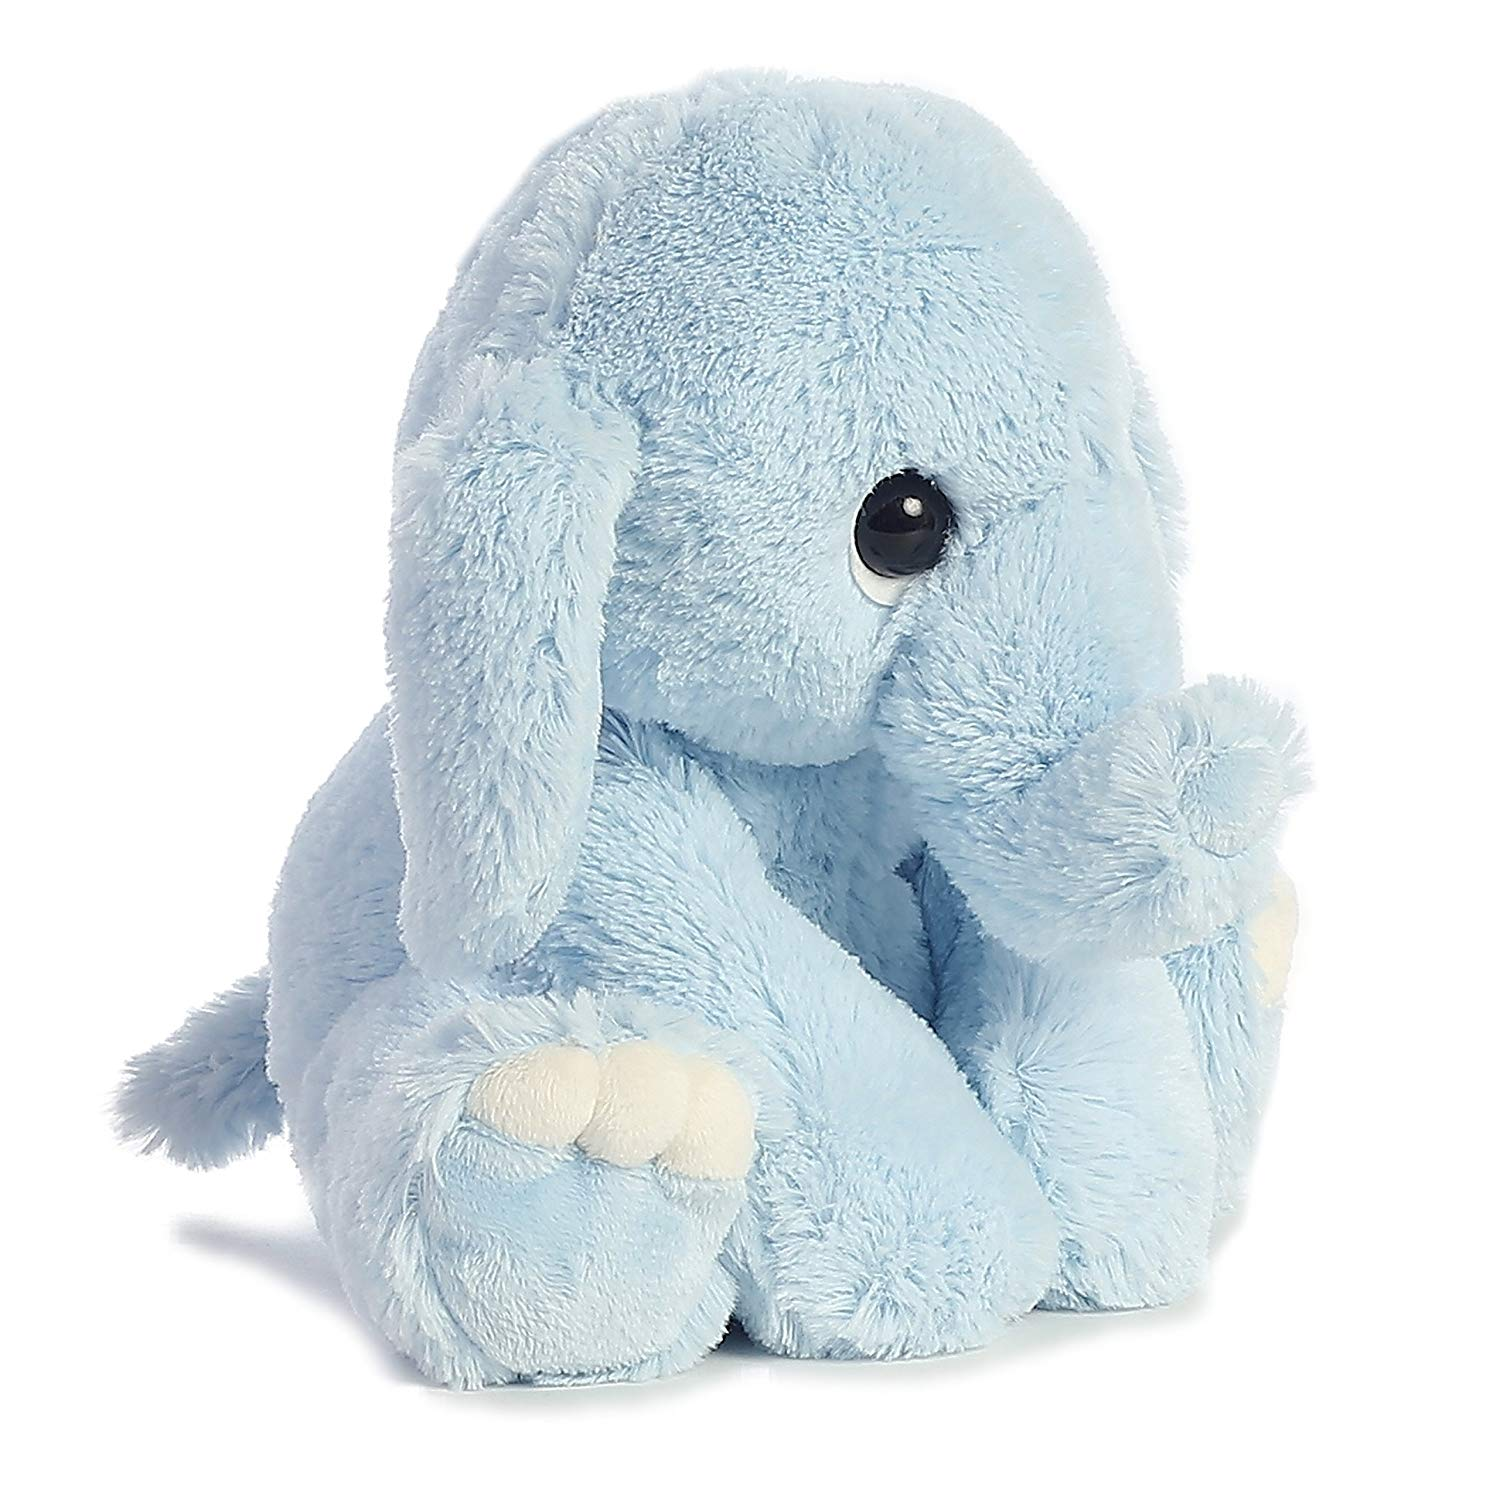 super soft cute baby toy blue color stuffed animal plush toy